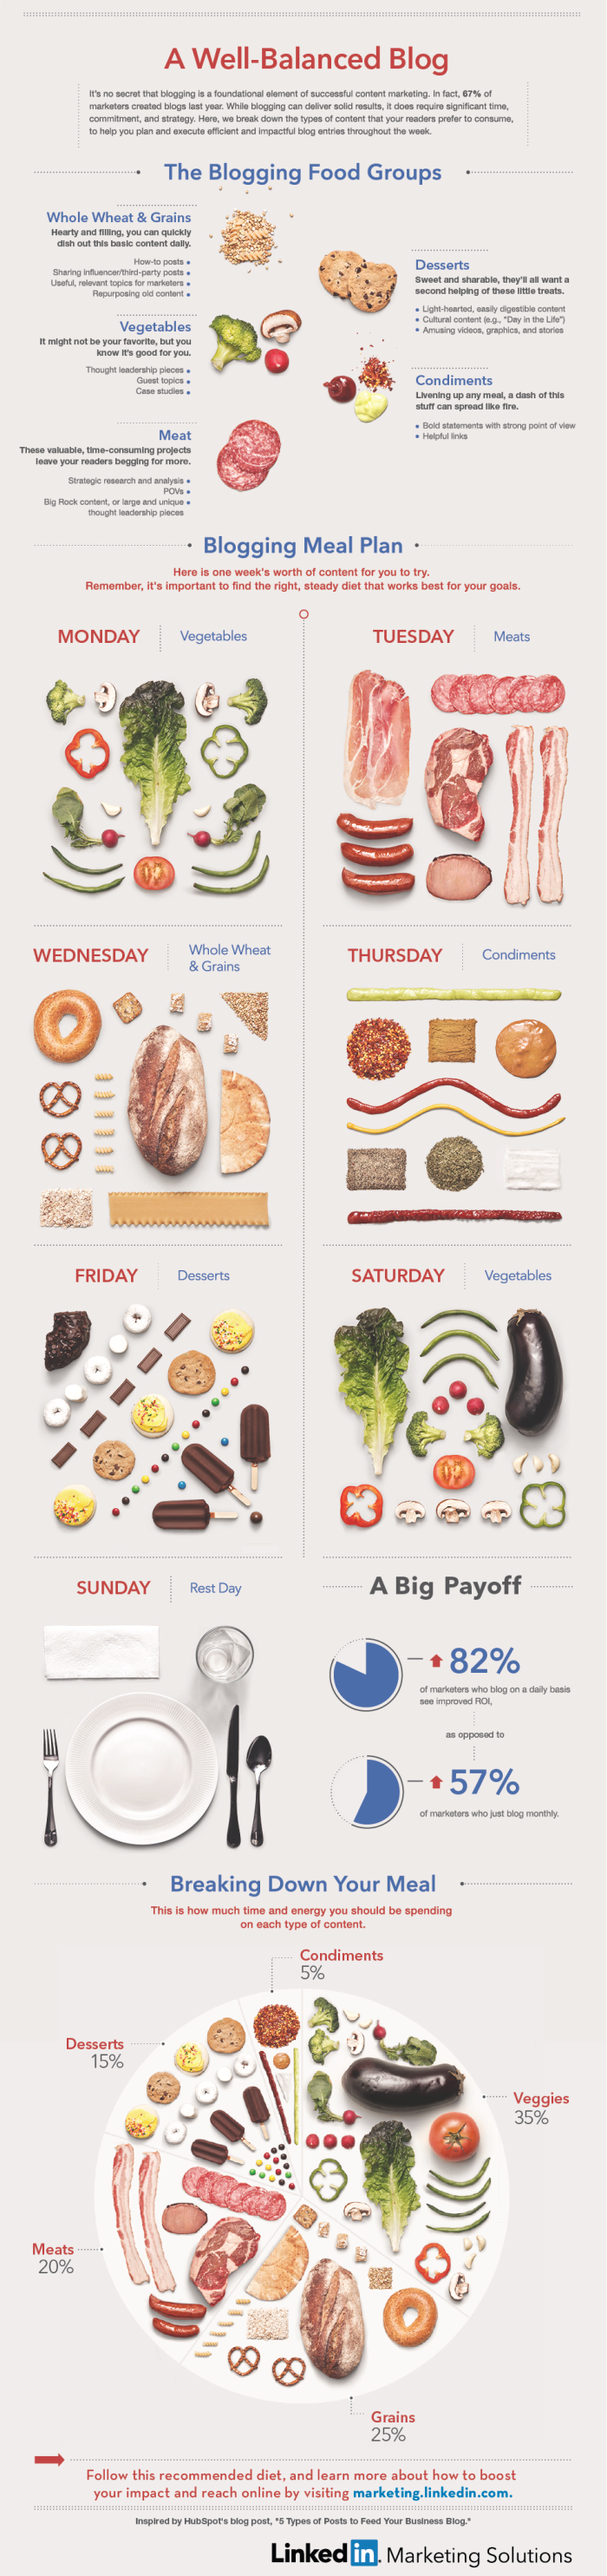 This Infographic On Branded Blogs Is Making Us Hungry